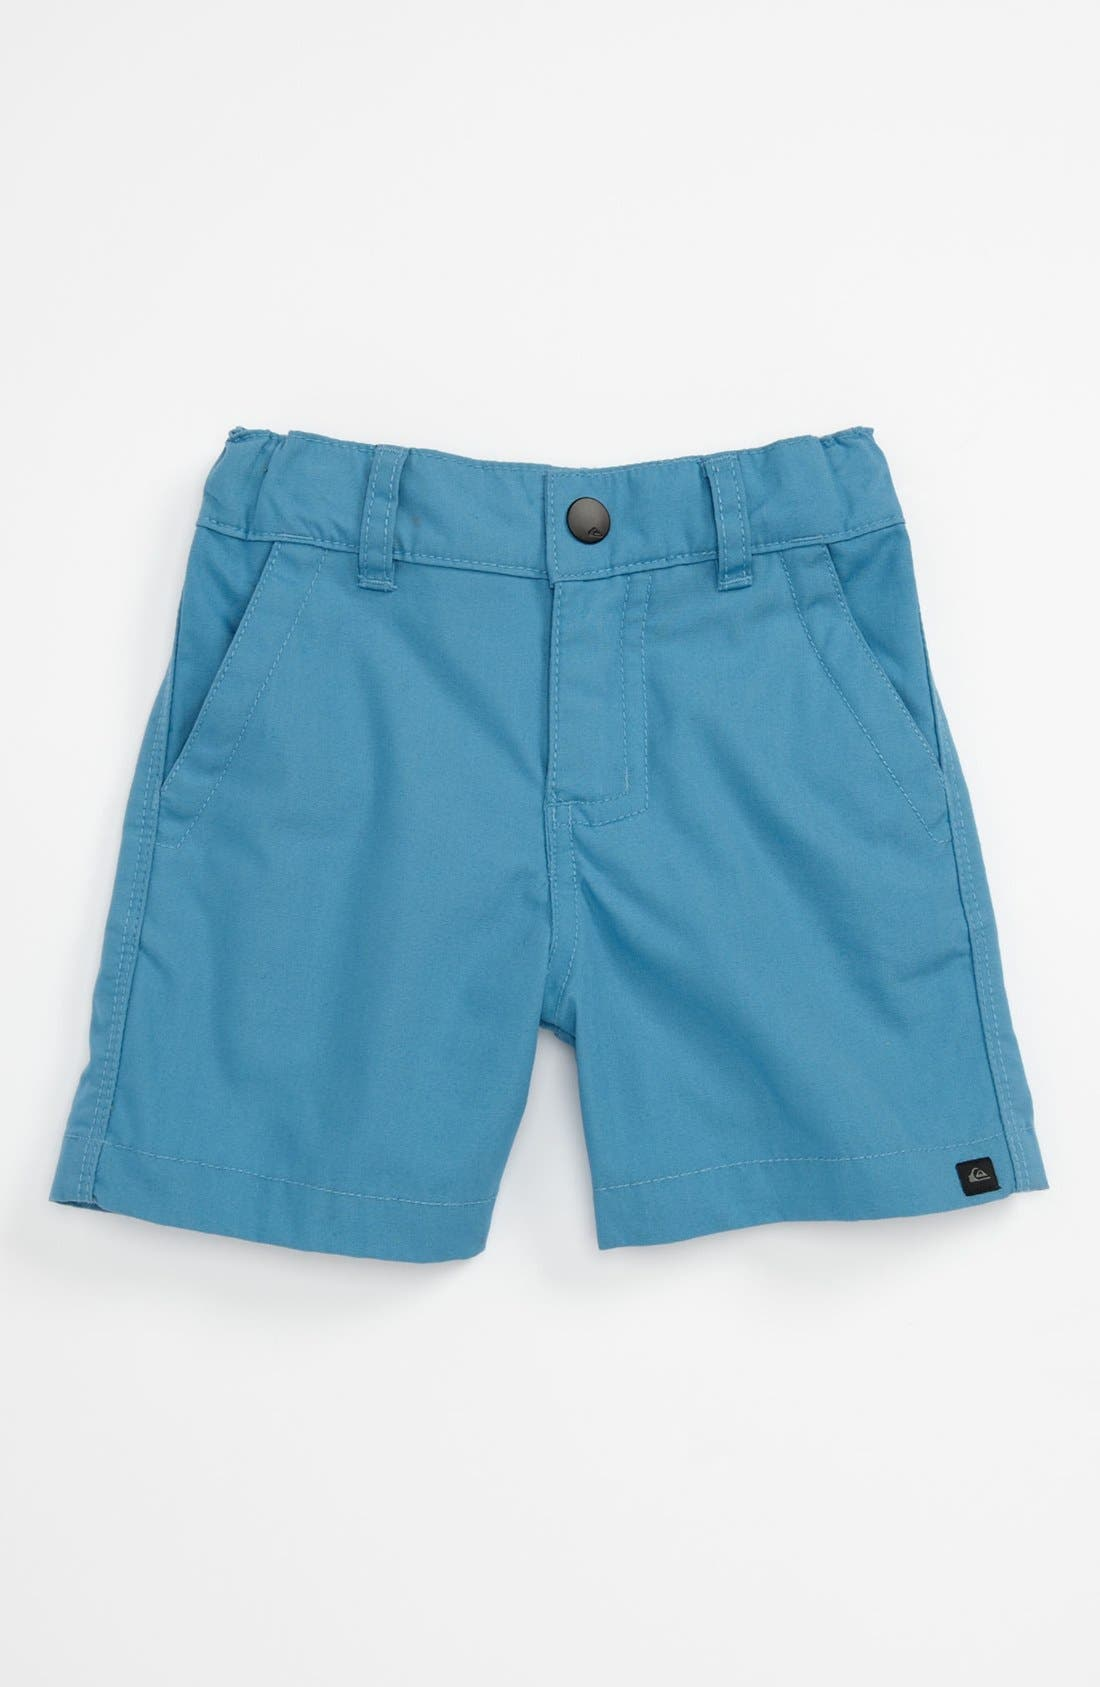 Alternate Image 1 Selected - Quiksilver 'Rockford' Shorts (Toddler)